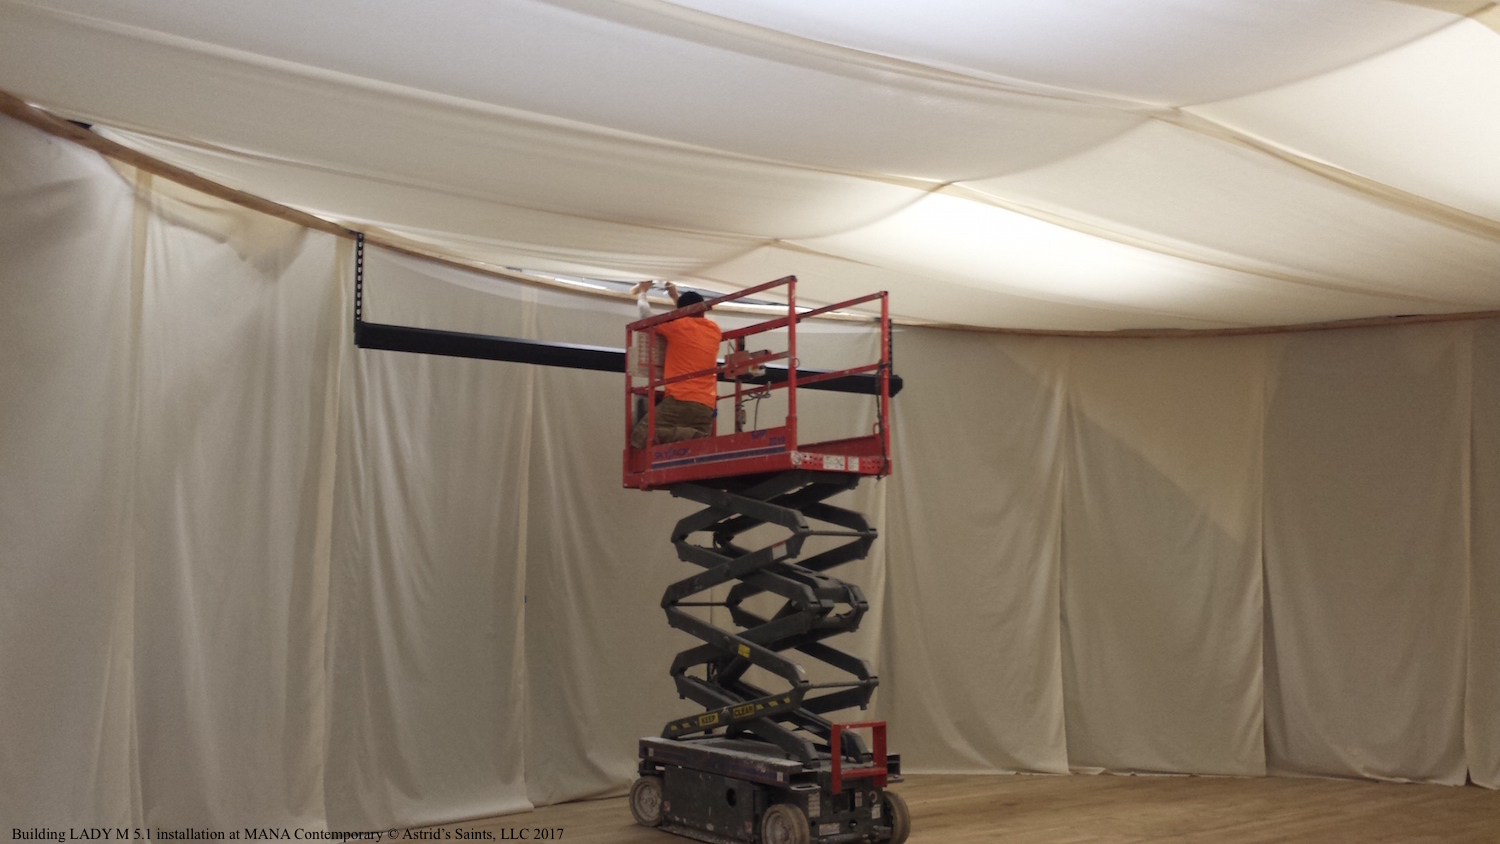 Building installation for LADY M 5.1 at MANA Contemporary All rights reserved.jpg